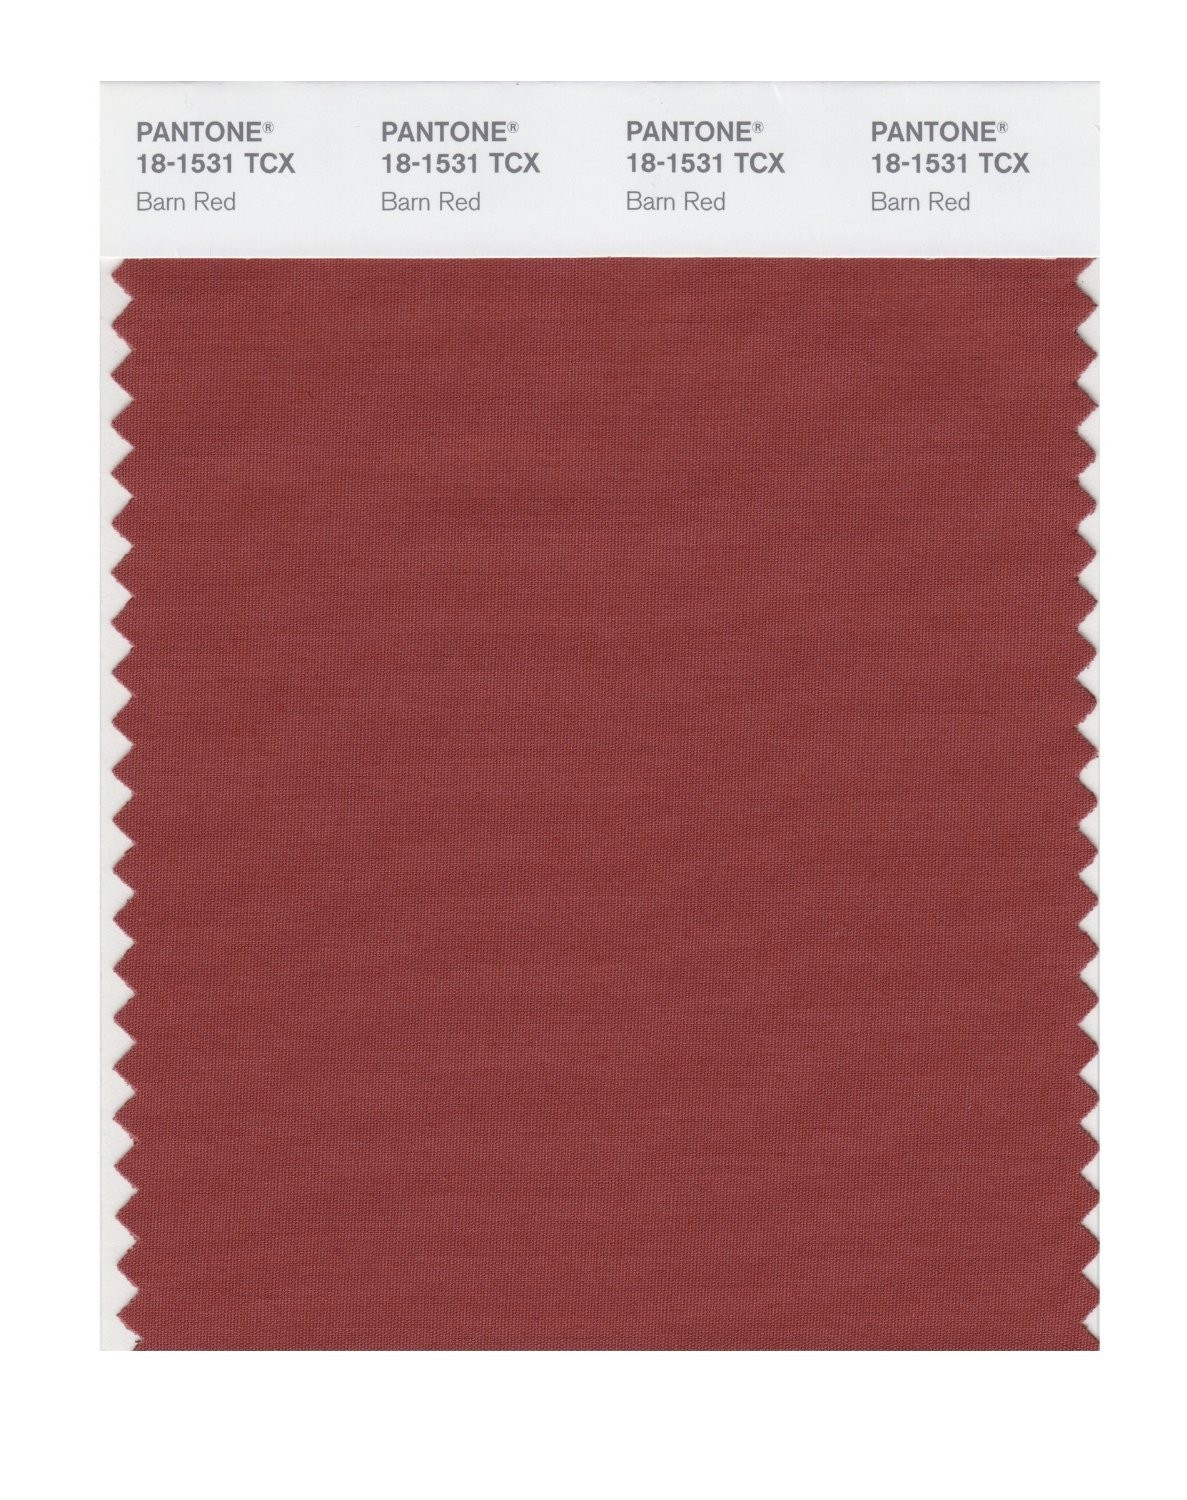 Pantone 18-1531 TCX Swatch Card Barn Red